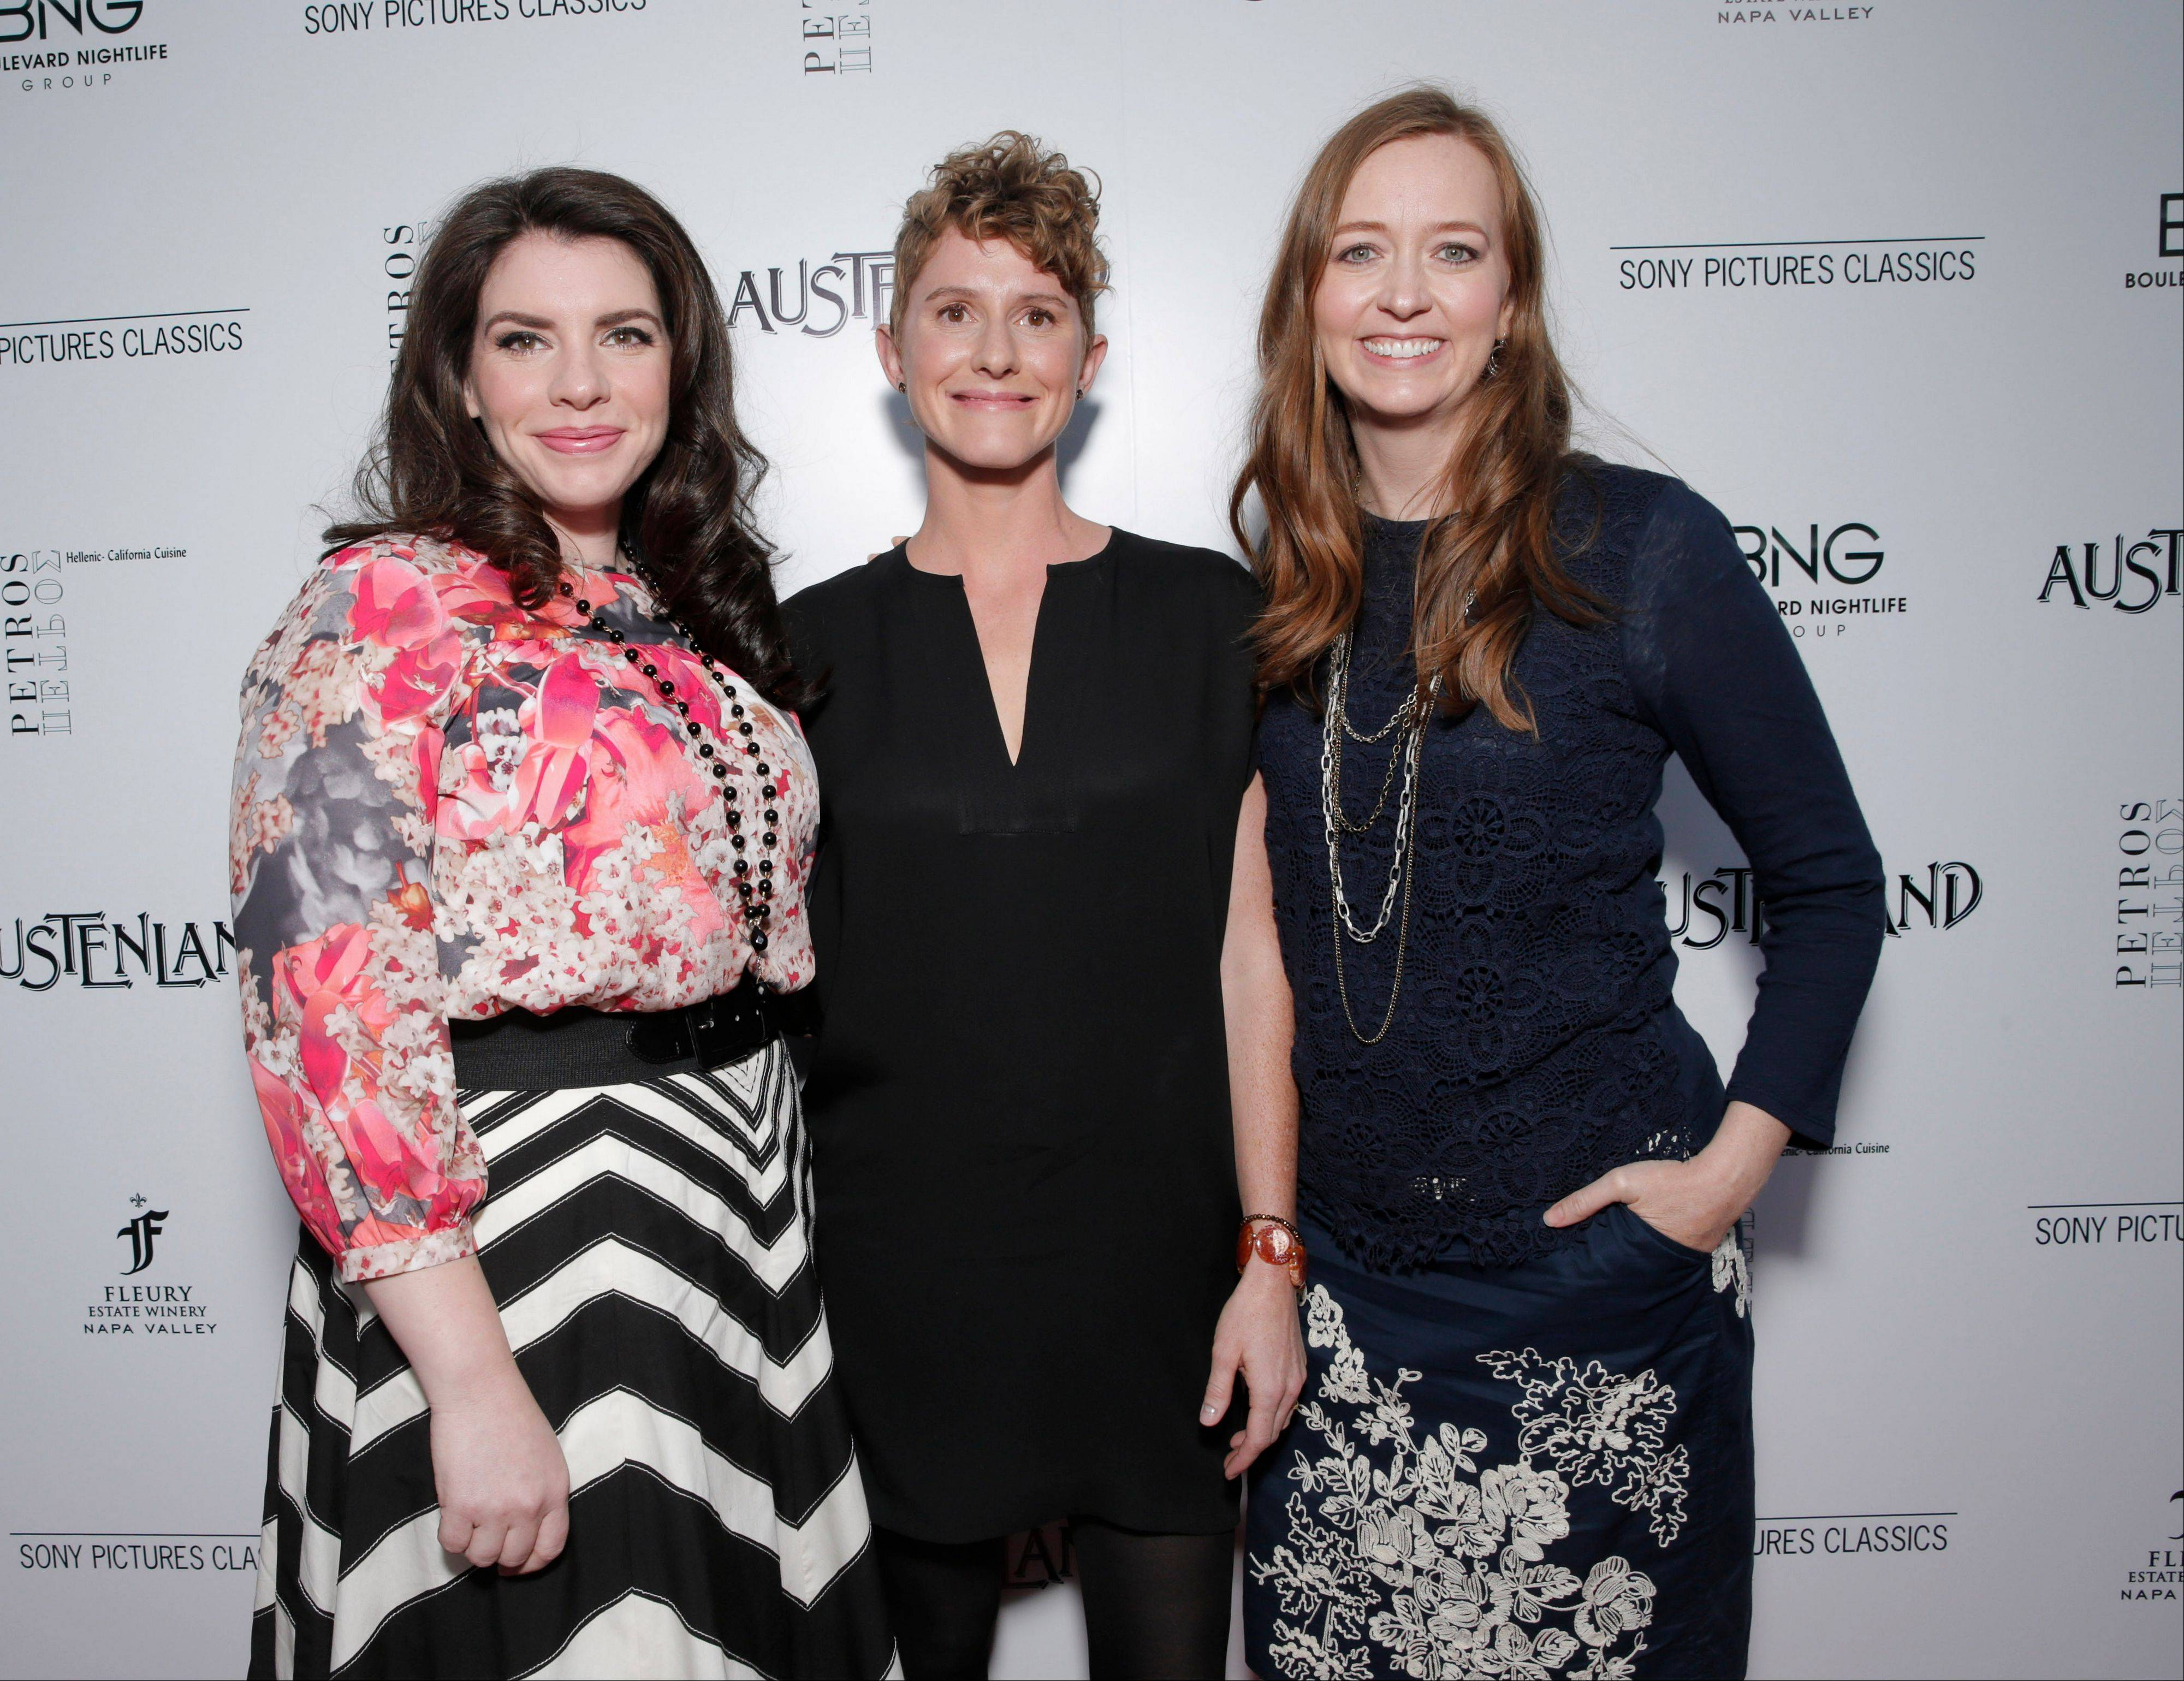 "Executive producer Stephenie Meyer, left, director Jerusha Hess and writer Shannon Hale at the Los Angeles premiere for Sony Pictures Classics' ""Austenland."" Meyer says she enjoyed the collaboration and socialization she experienced while producing the movie."